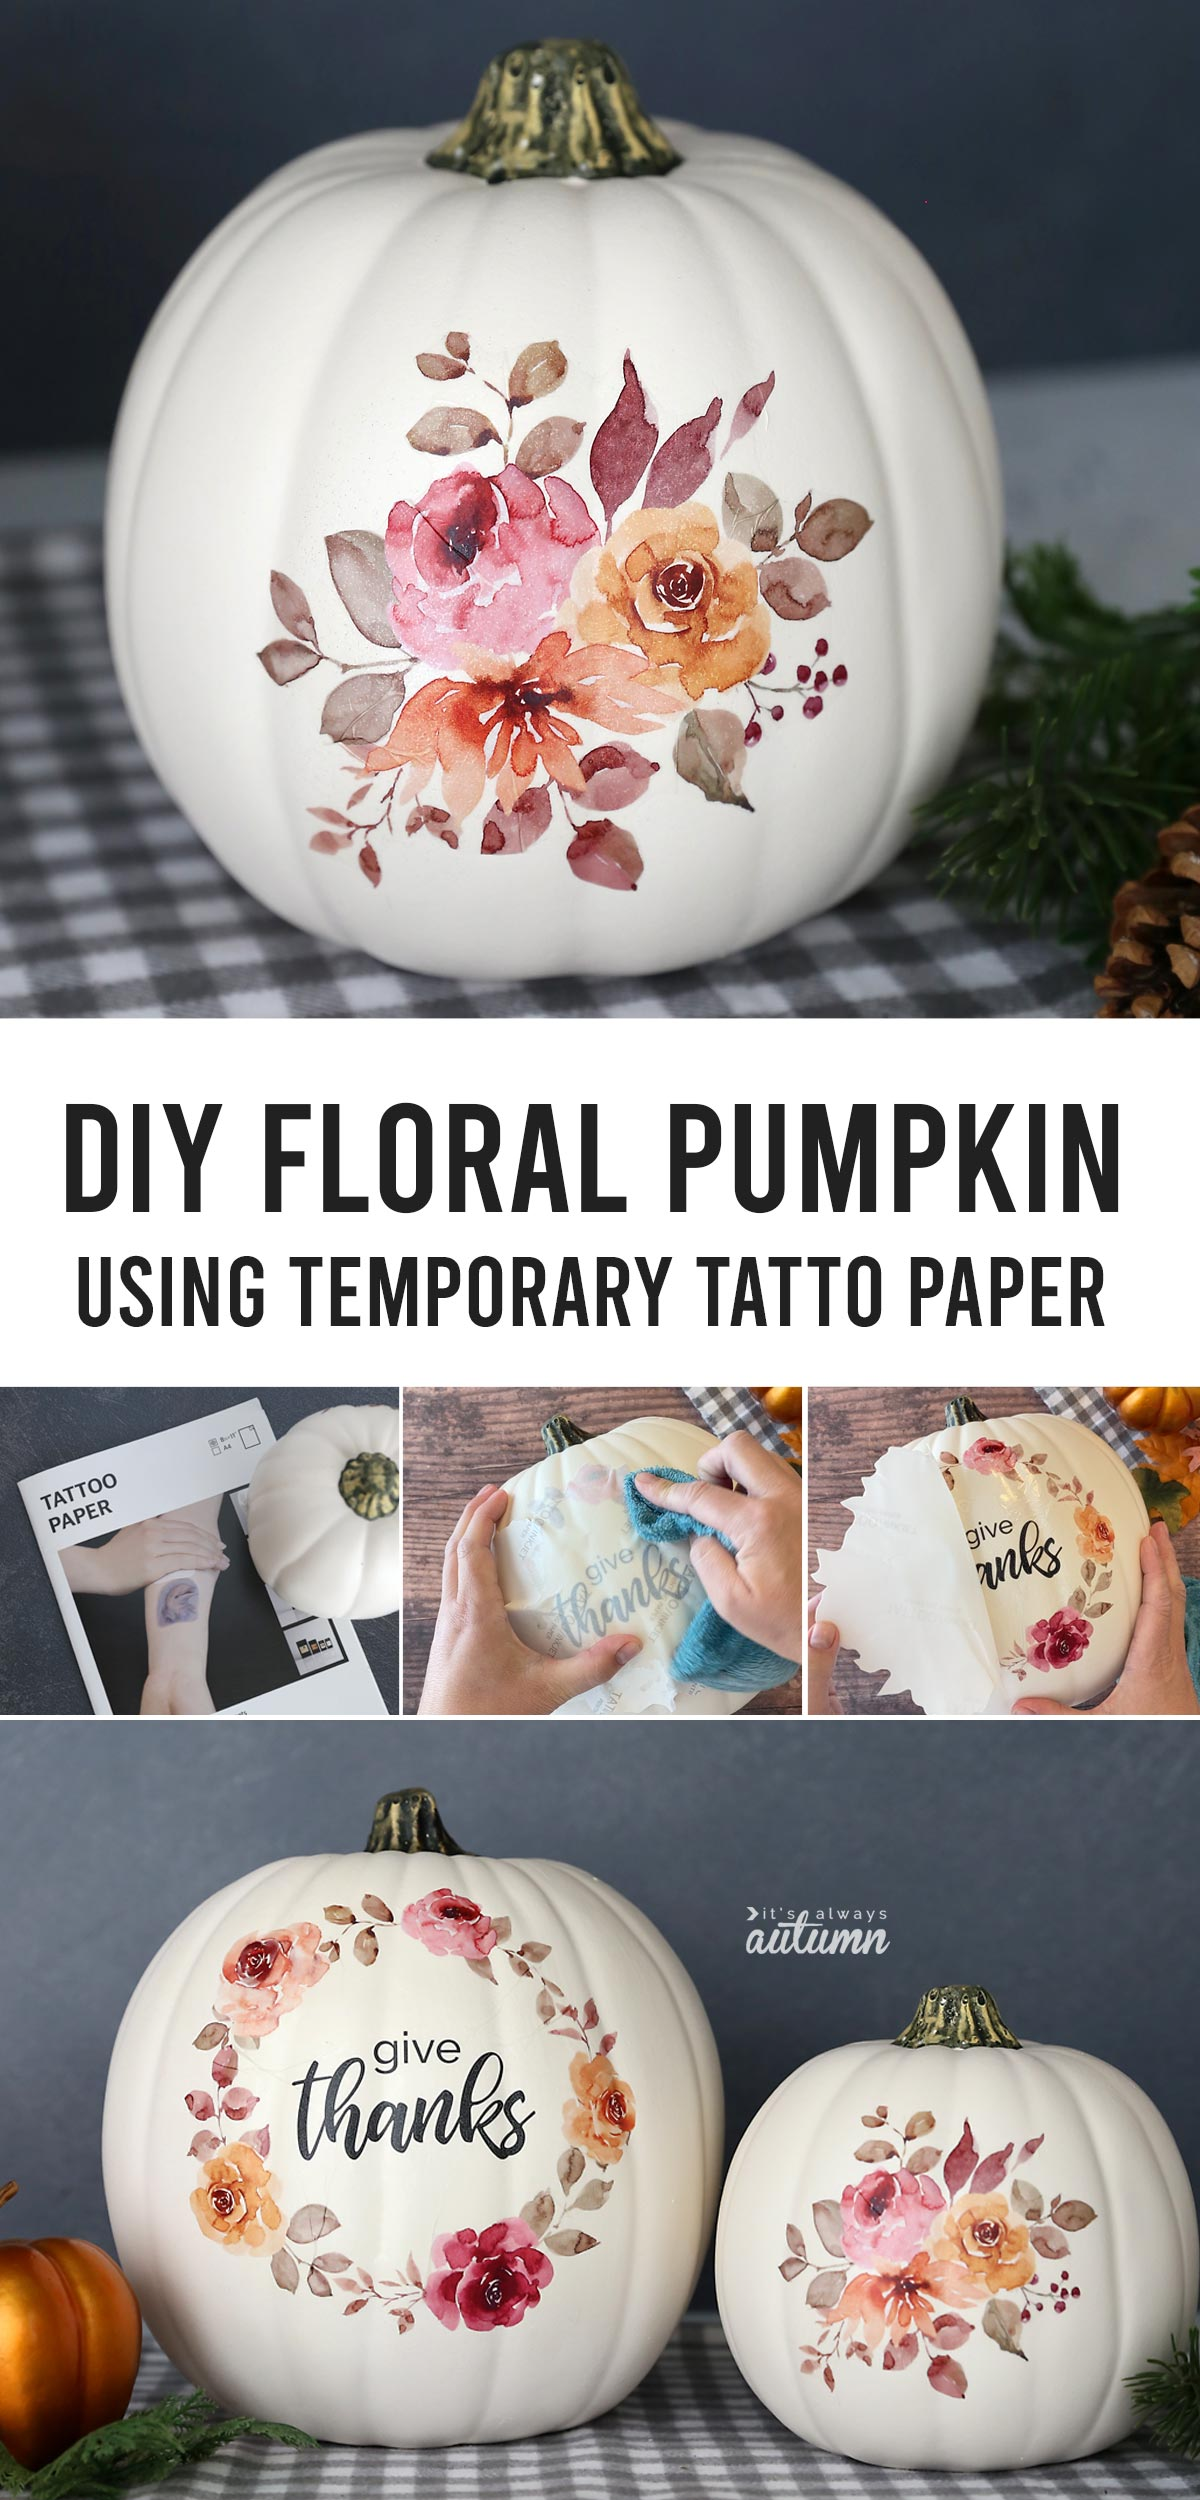 This pretty floral pumpkin is easy to make in 15 minutes using temporary tattoo paper!